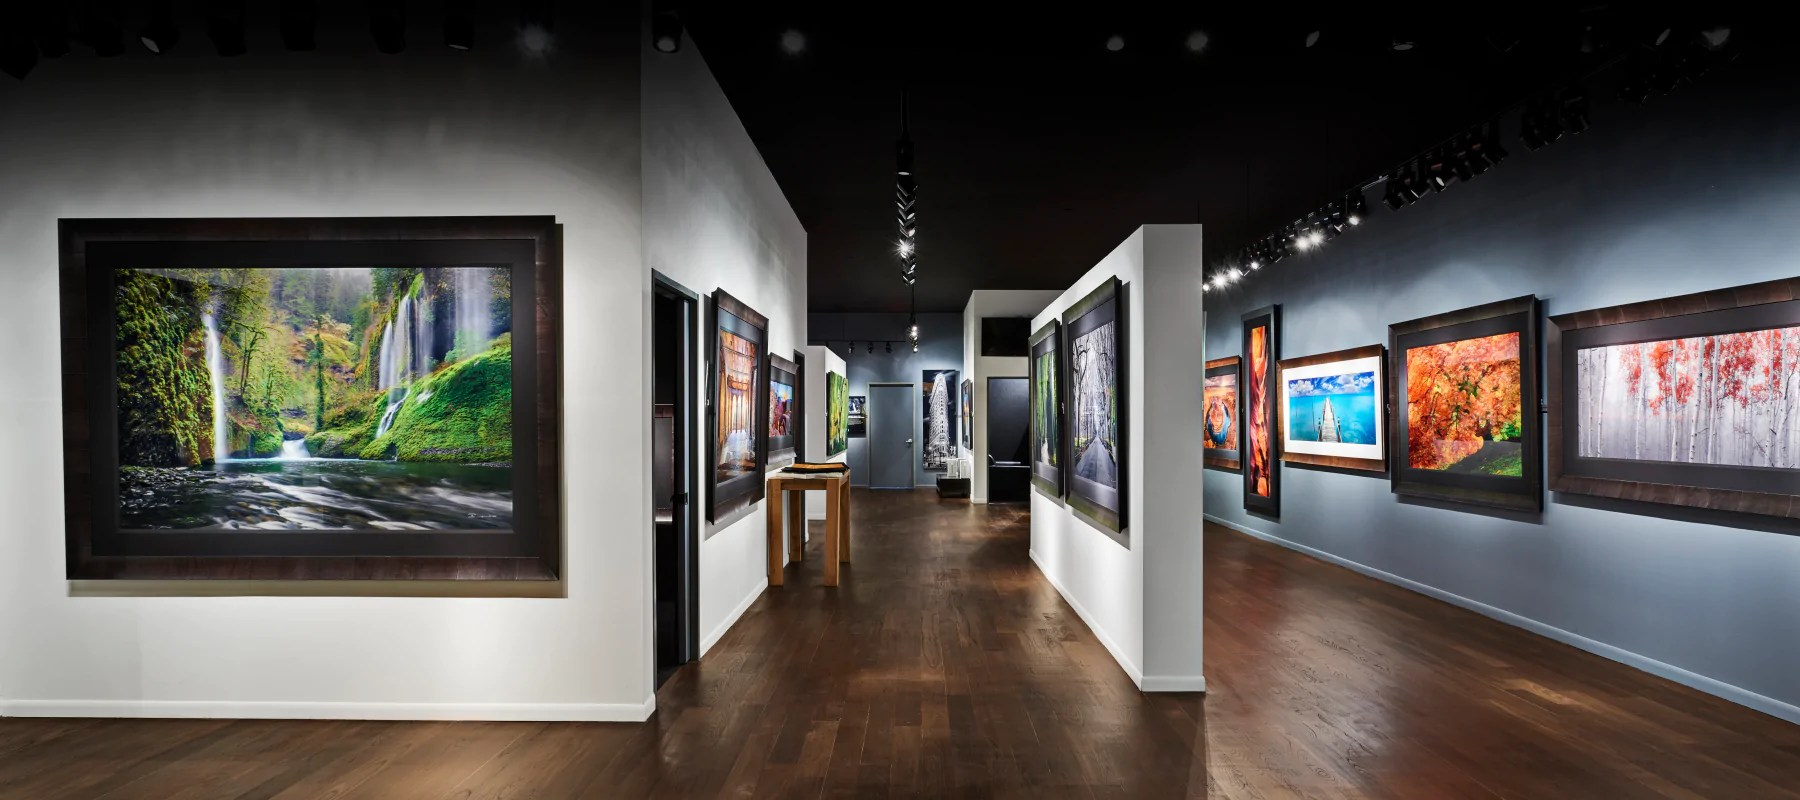 Peter Lik Gallery Las Vegas Art